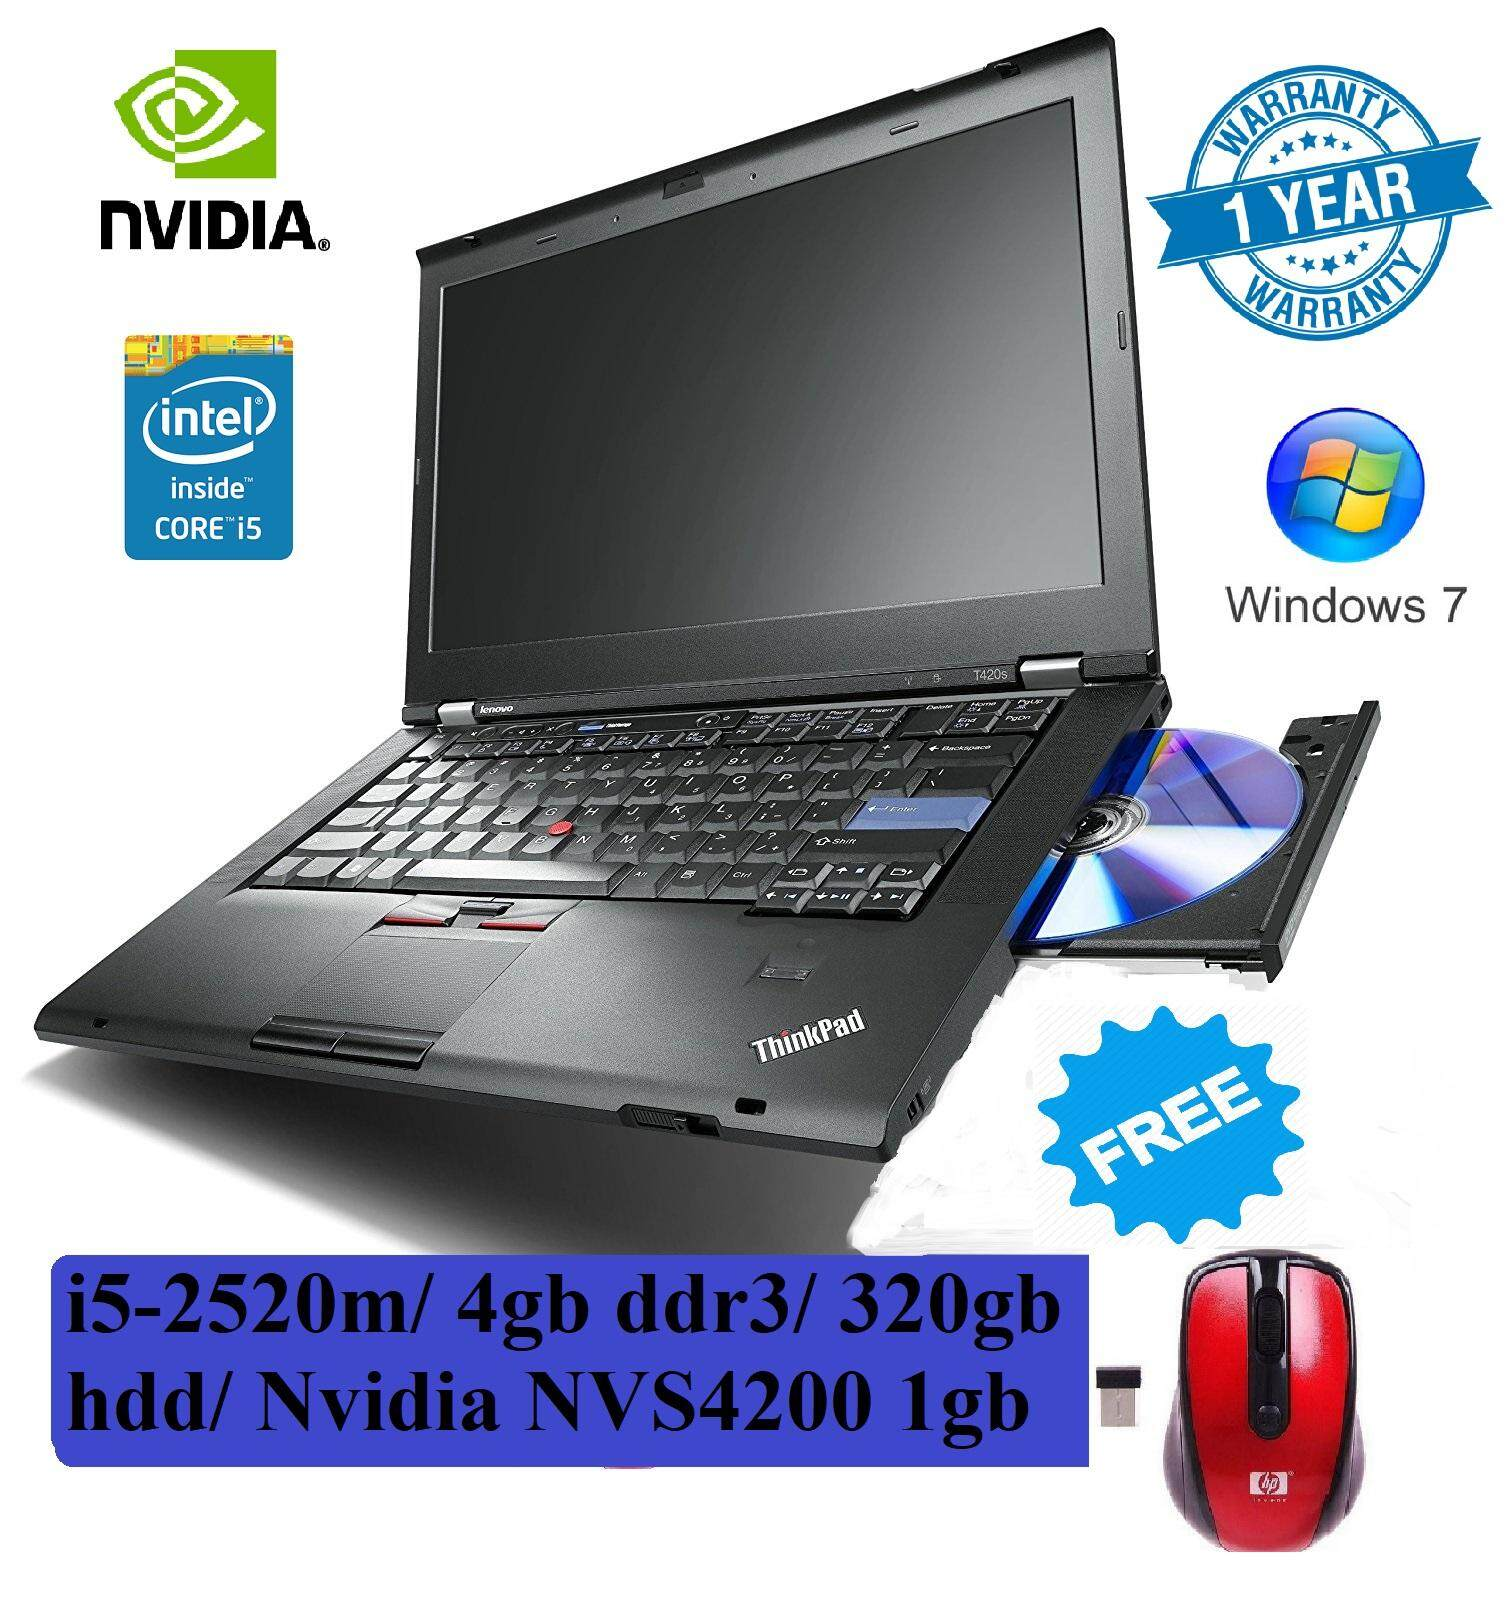 (refurbished) Lenovo thinkPad T420 i5-2520M/4gb/Nvidia 1GB Nvs4200m Malaysia